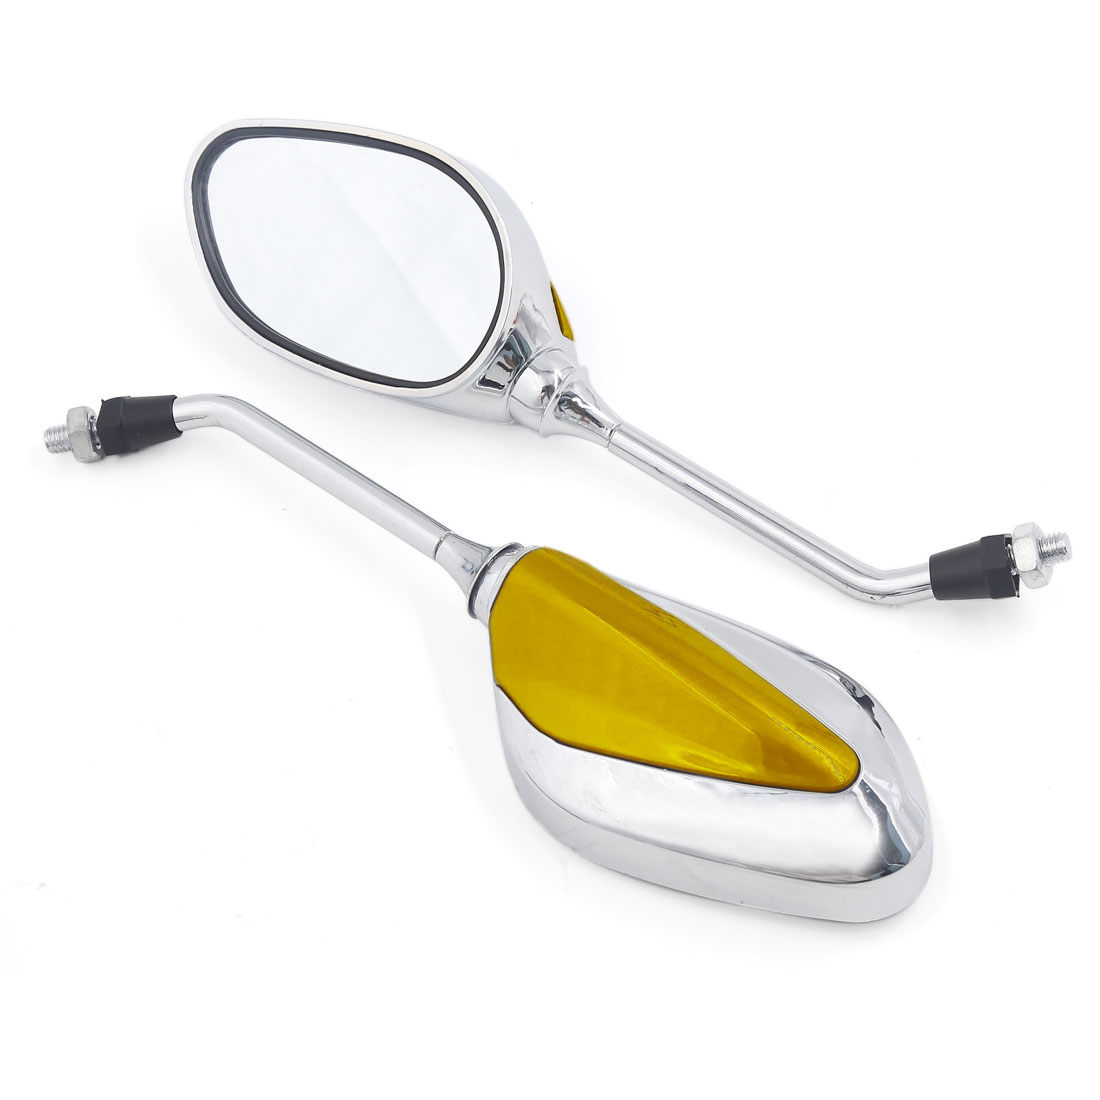 8mm Thread Dia Oval Shaped Motorcycle Street Bike Chopper Side Rearview Mirror Gold Tone Pair